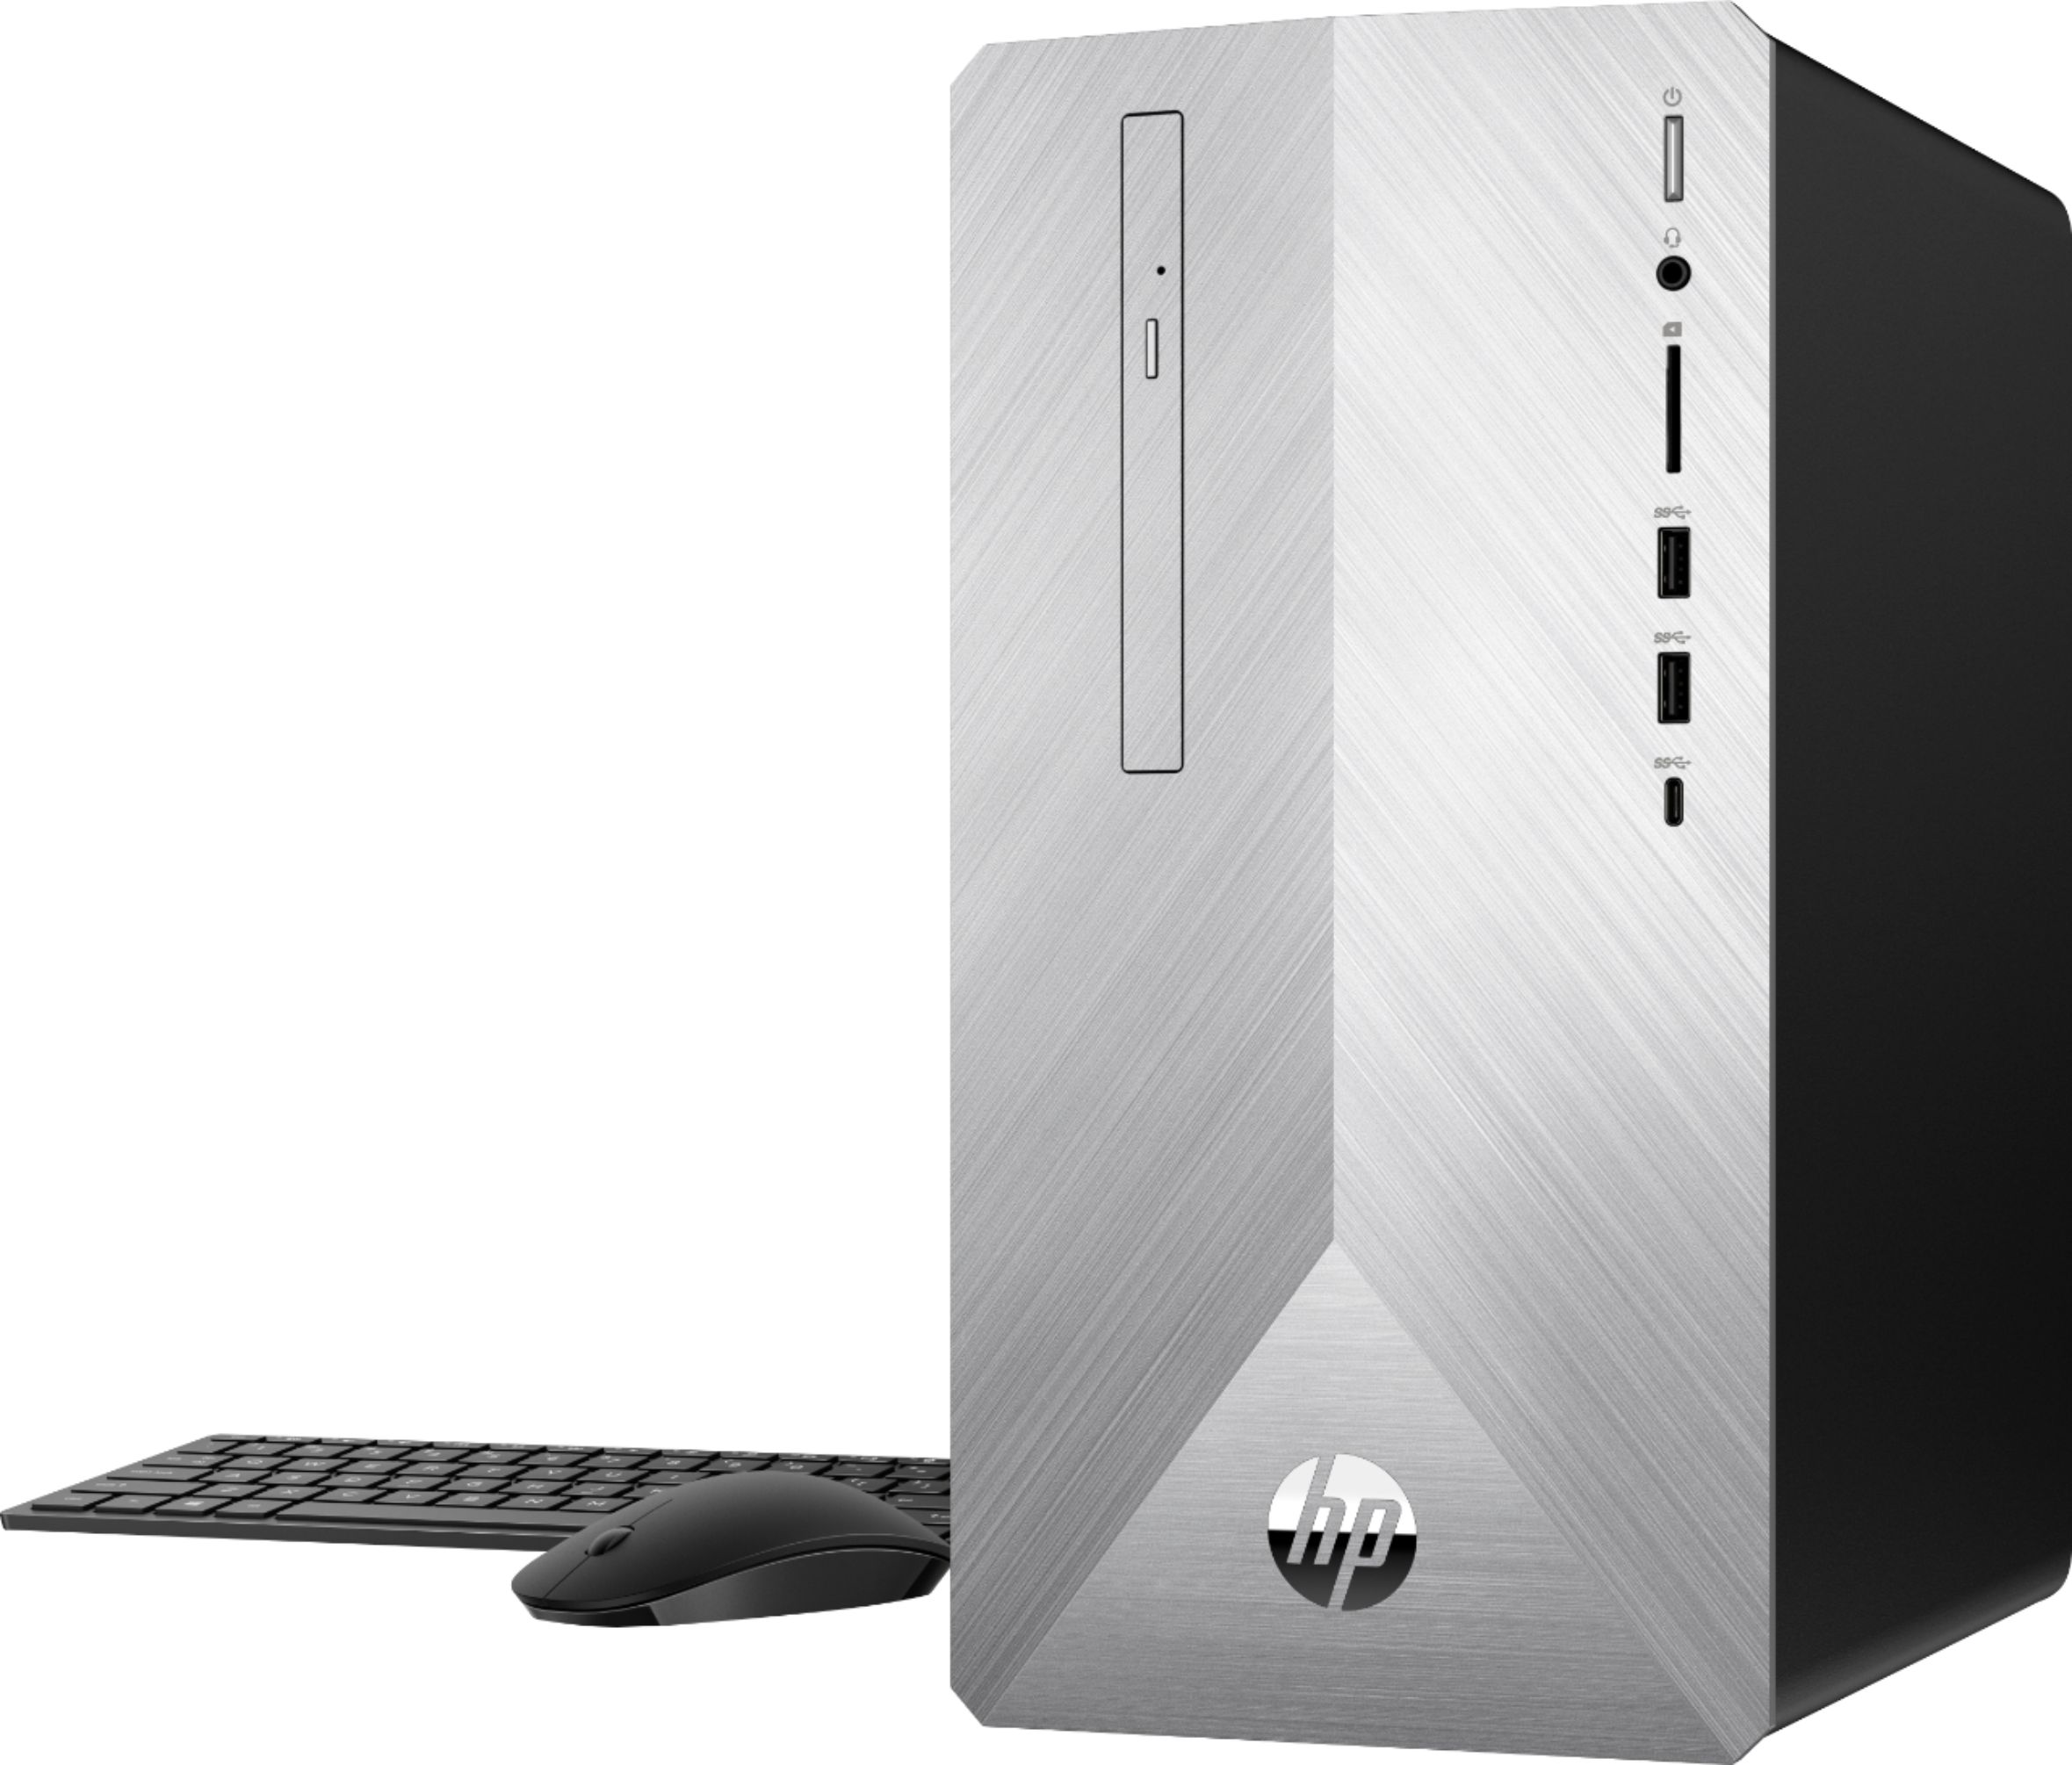 Left Zoom. HP - Geek Squad Certified Refurbished Pavilion Desktop - Intel Core i5 - 12GB Memory - 1TB HDD + 128GB SSD - Natural Silver/Brushed Hairline Pattern.